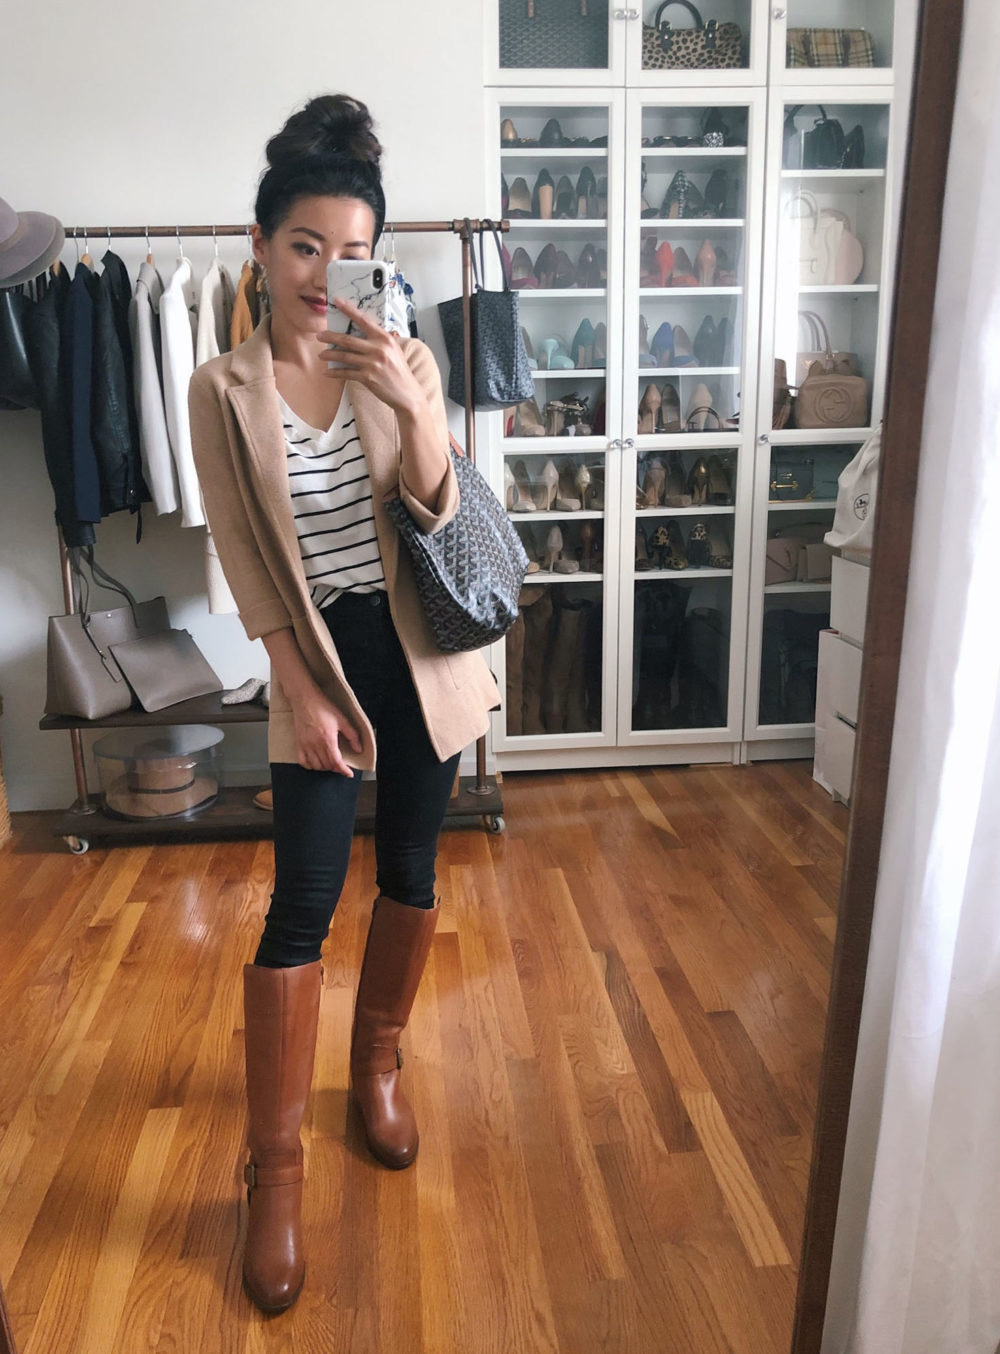 e5383e998c9b Extra Petite - Fashion, style tips, and outfit ideas | Based in Boston